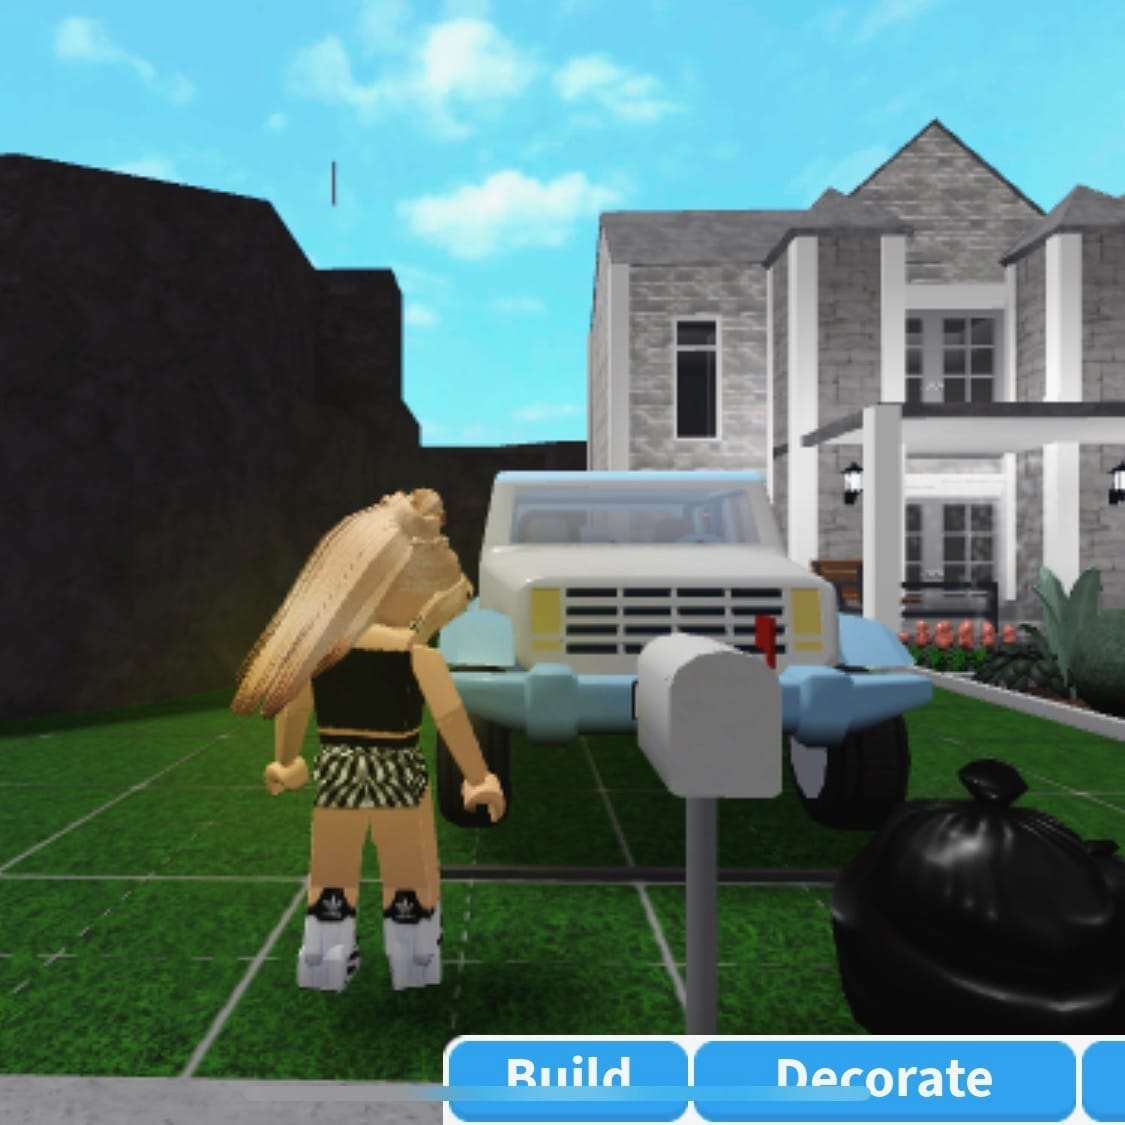 How To Build A Good House In Welcome To Bloxburg لم يسبق له مثيل